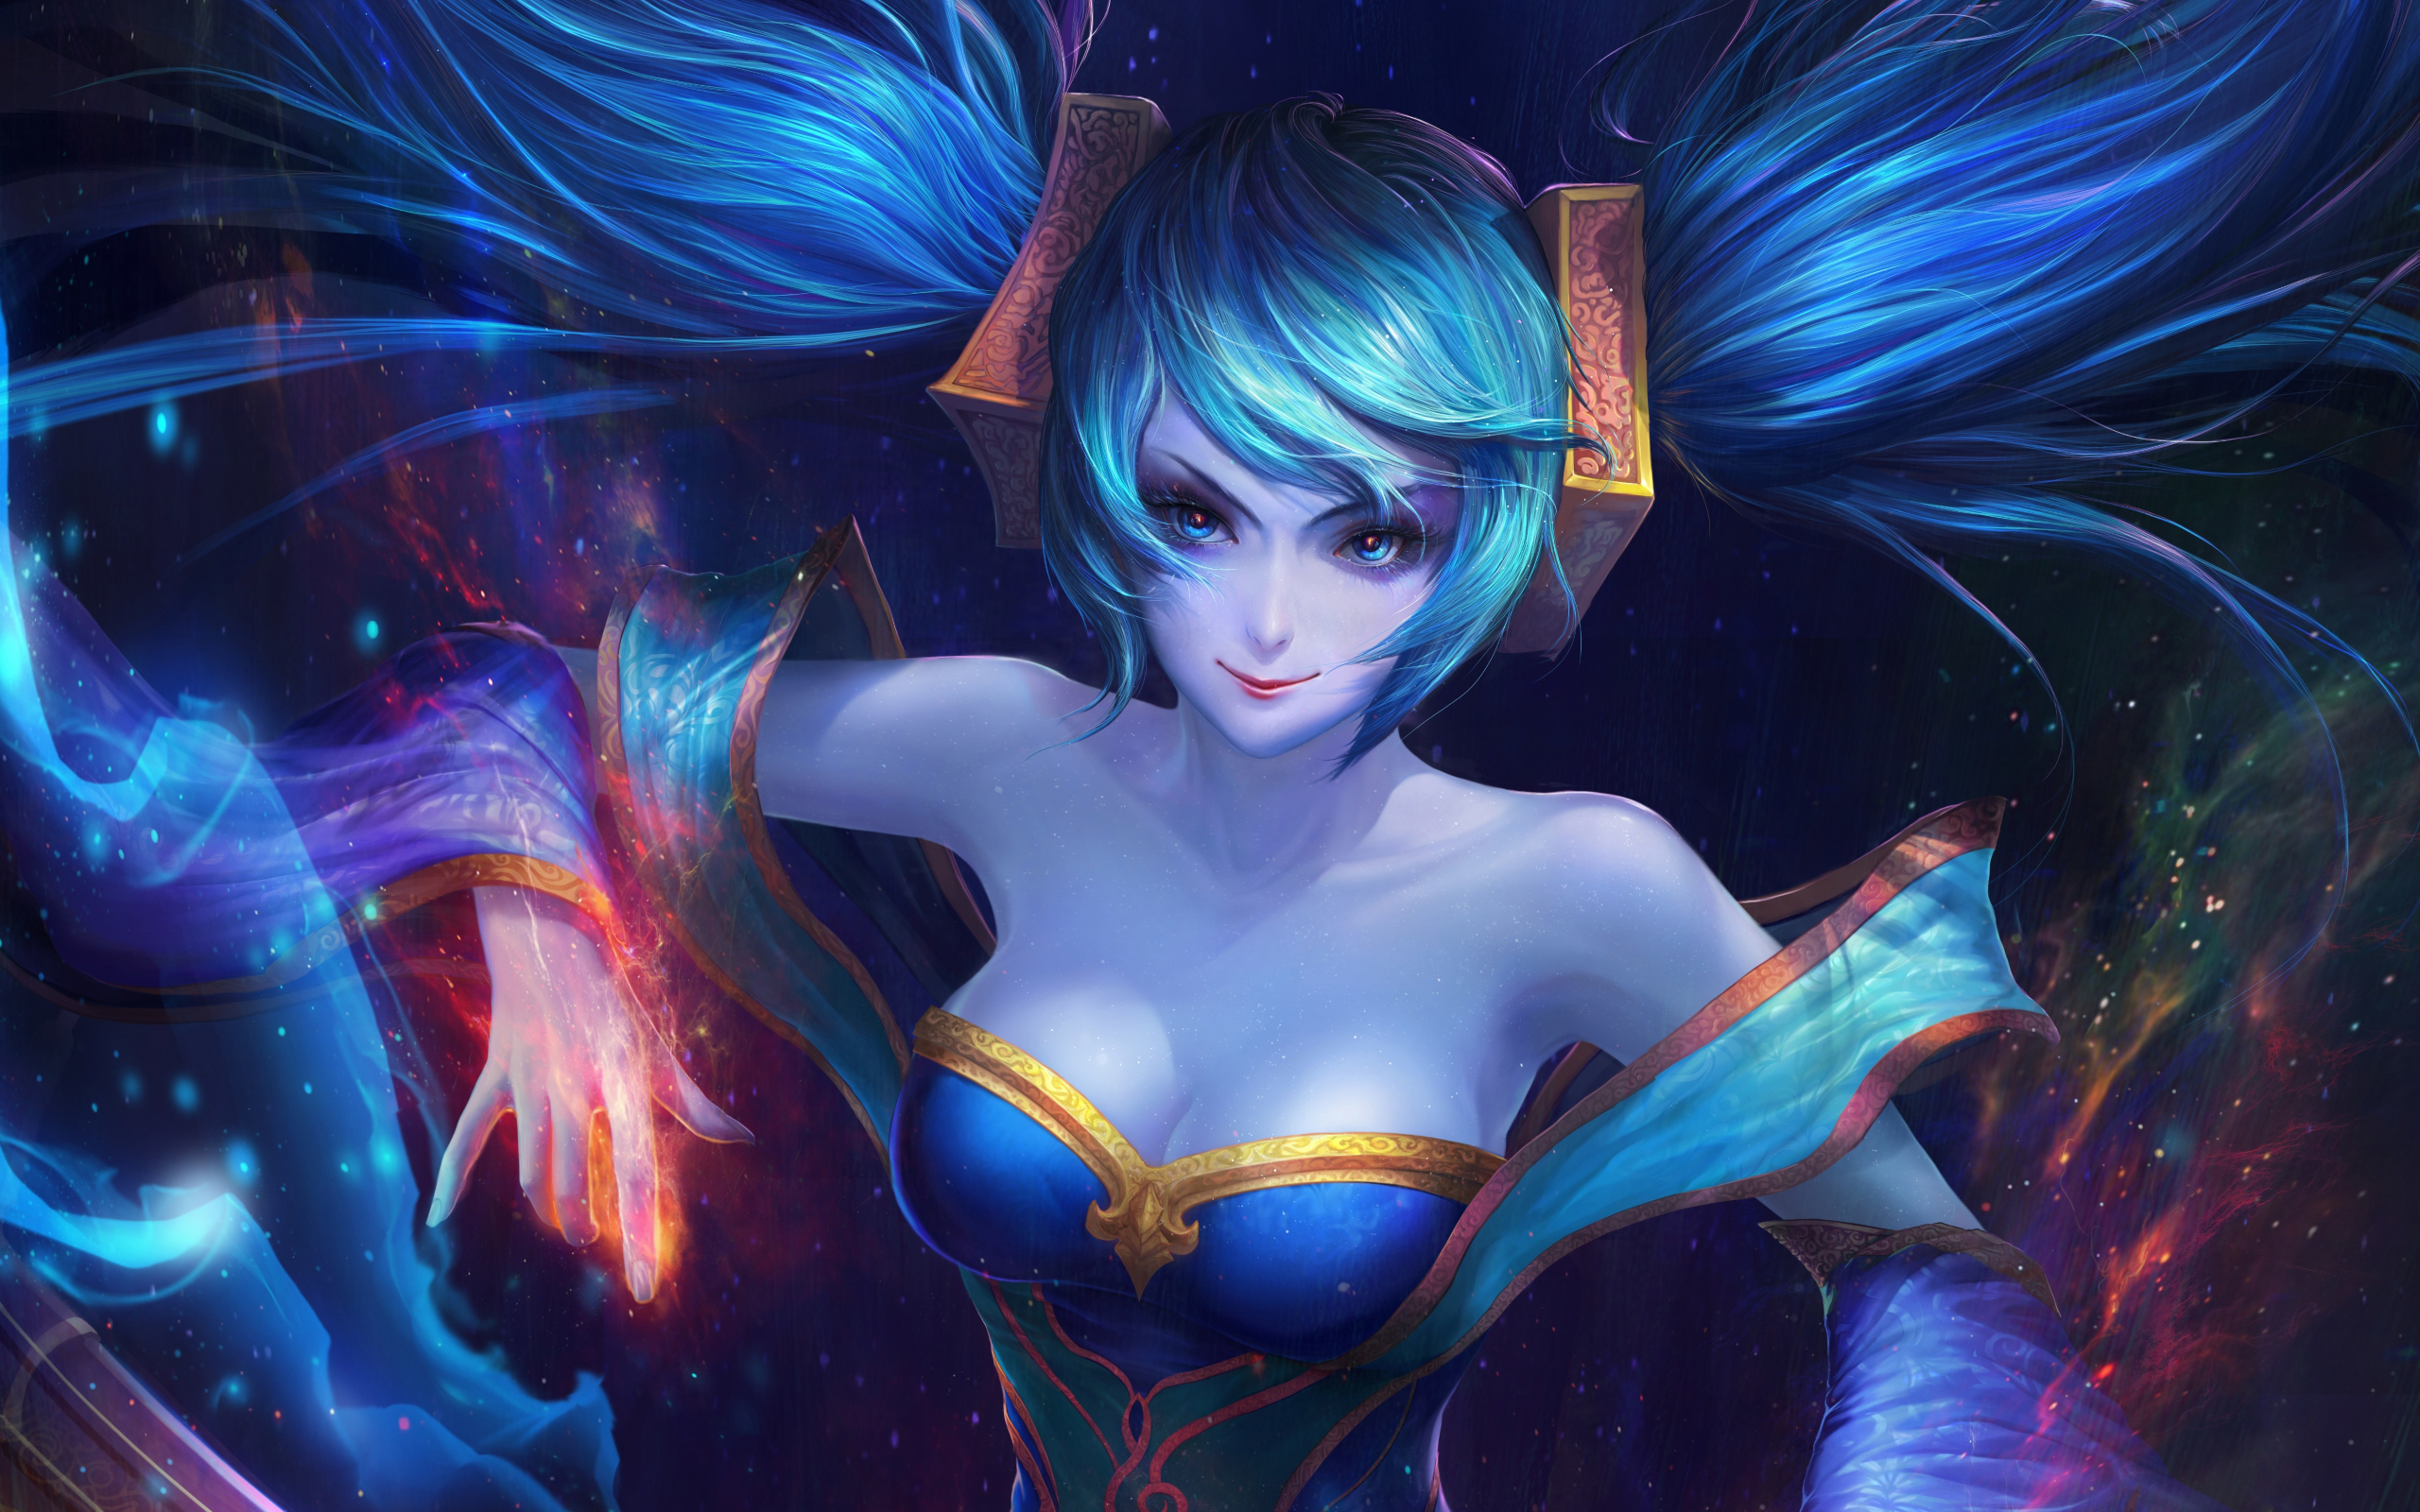 Dual Monitor Wallpaper League Of Legends: Sona League Of Legends, HD 4K Wallpaper